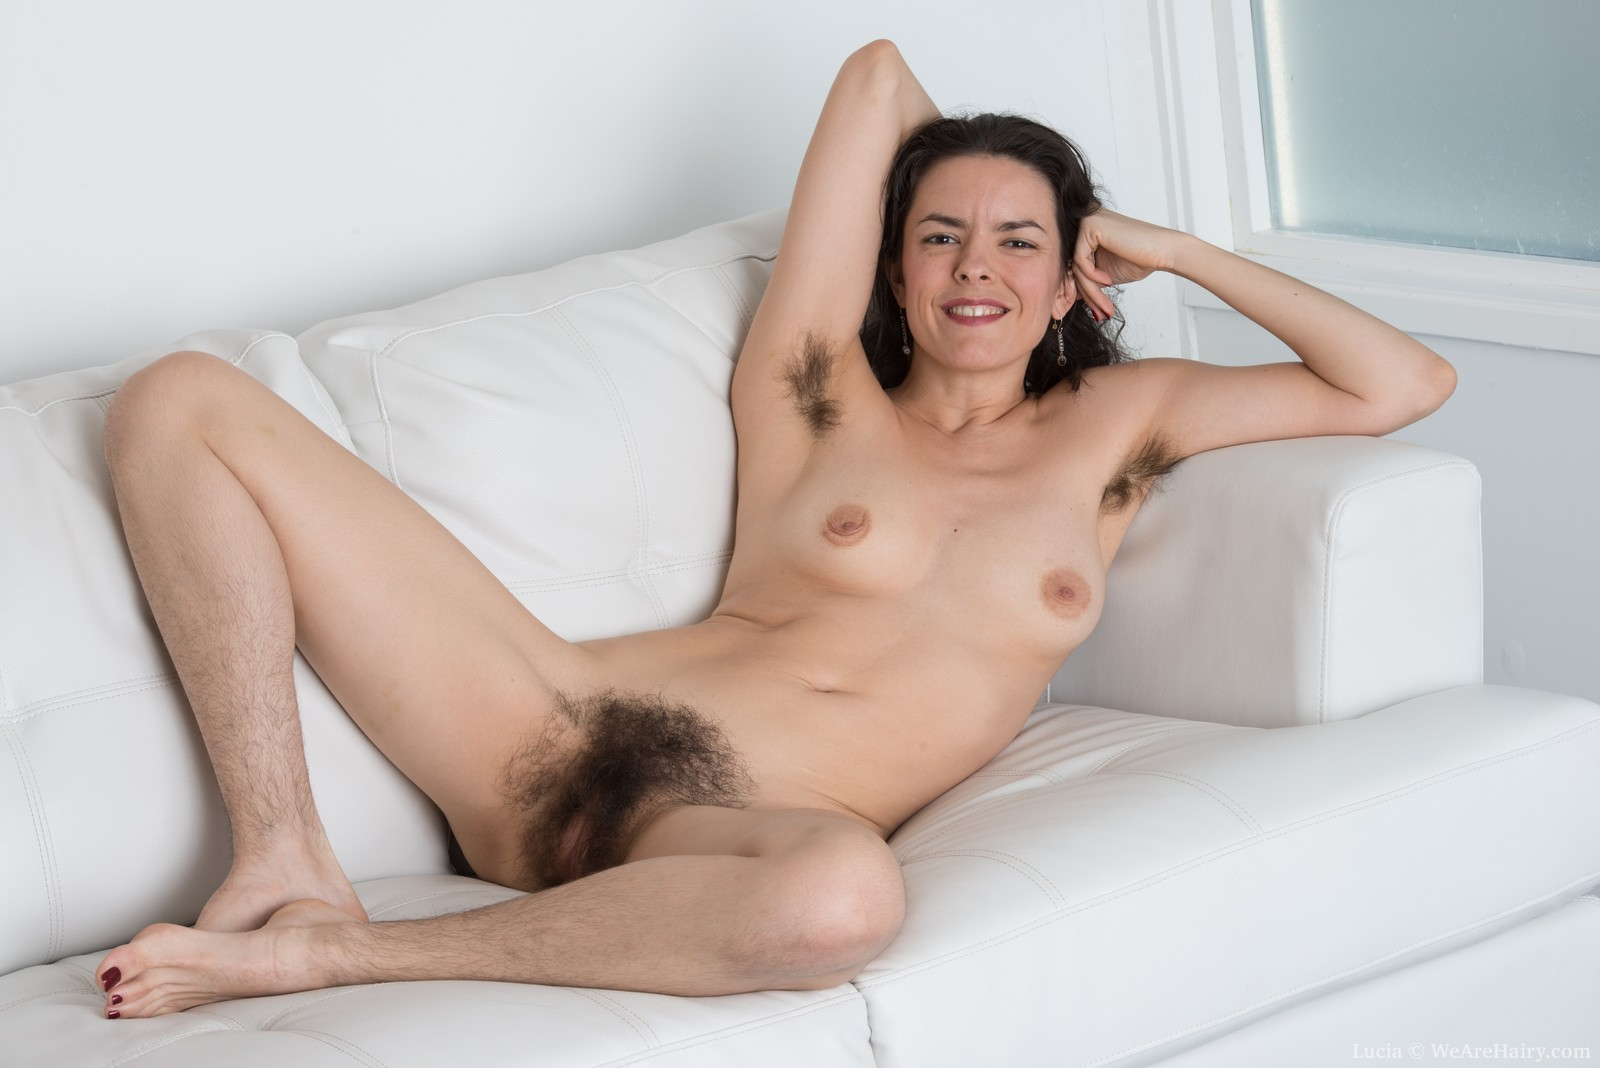 Remarkable, Nude hot hairy black girls commit error